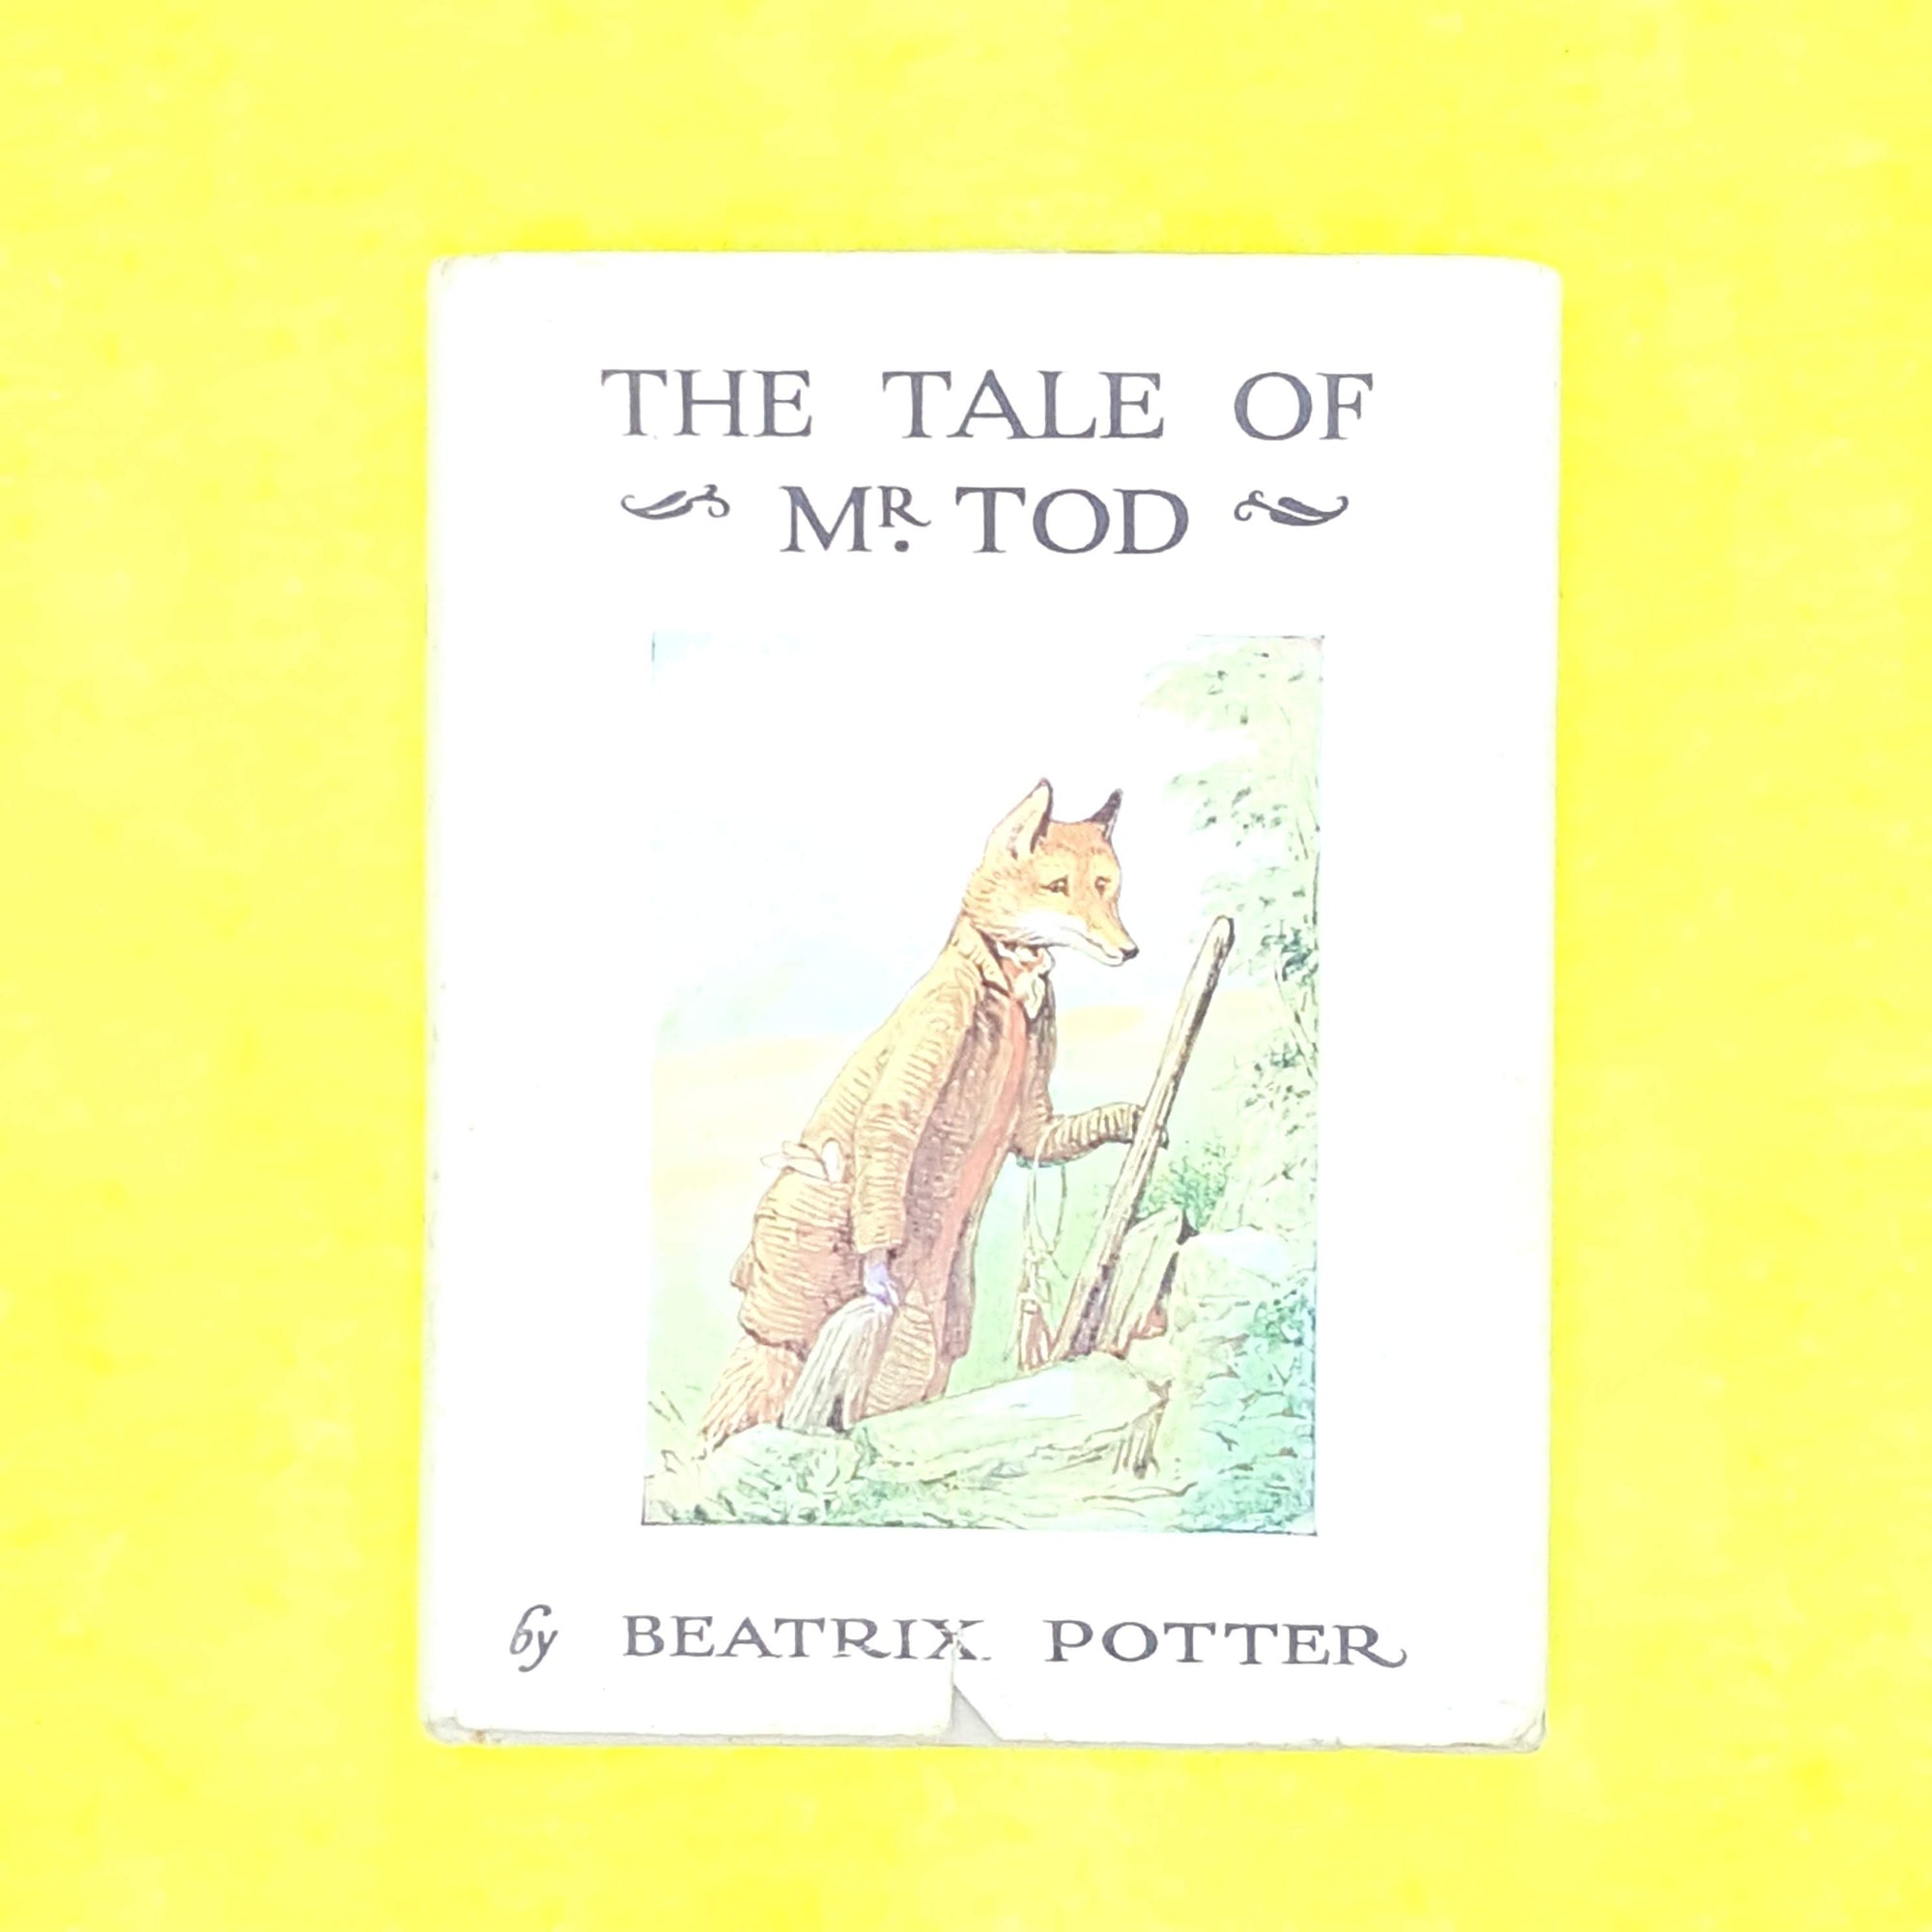 country-house-library-childrens-decorative-antique-classic-patterned-books-vintage-thrift-old-beatrix-potter-grey-tale-of-mr-tod-